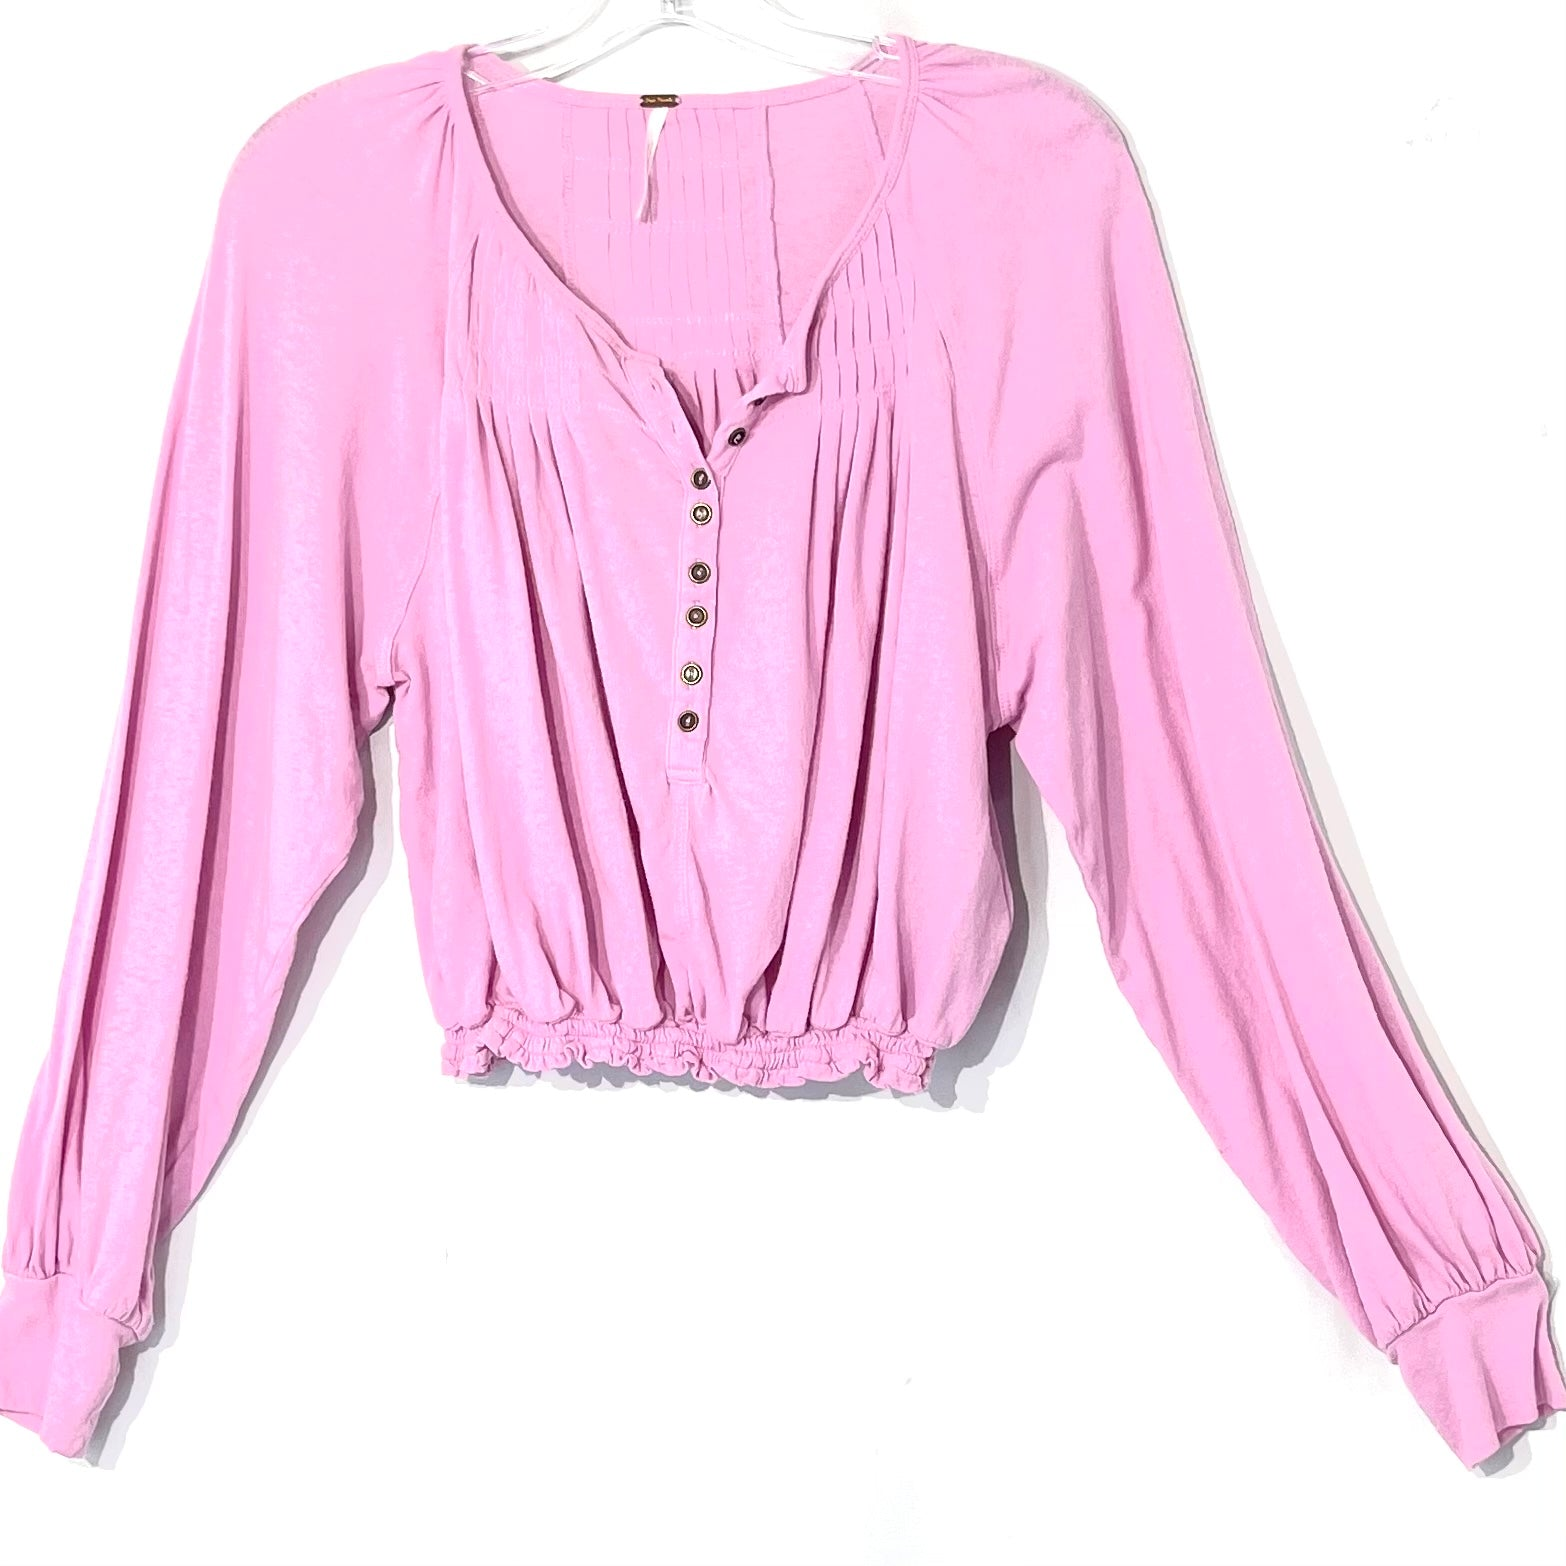 Primary Photo - BRAND: FREE PEOPLE <BR>STYLE: TOP LONG SLEEVE <BR>COLOR: LILAC<BR>SIZE: M <BR>SKU: 262-26275-66744